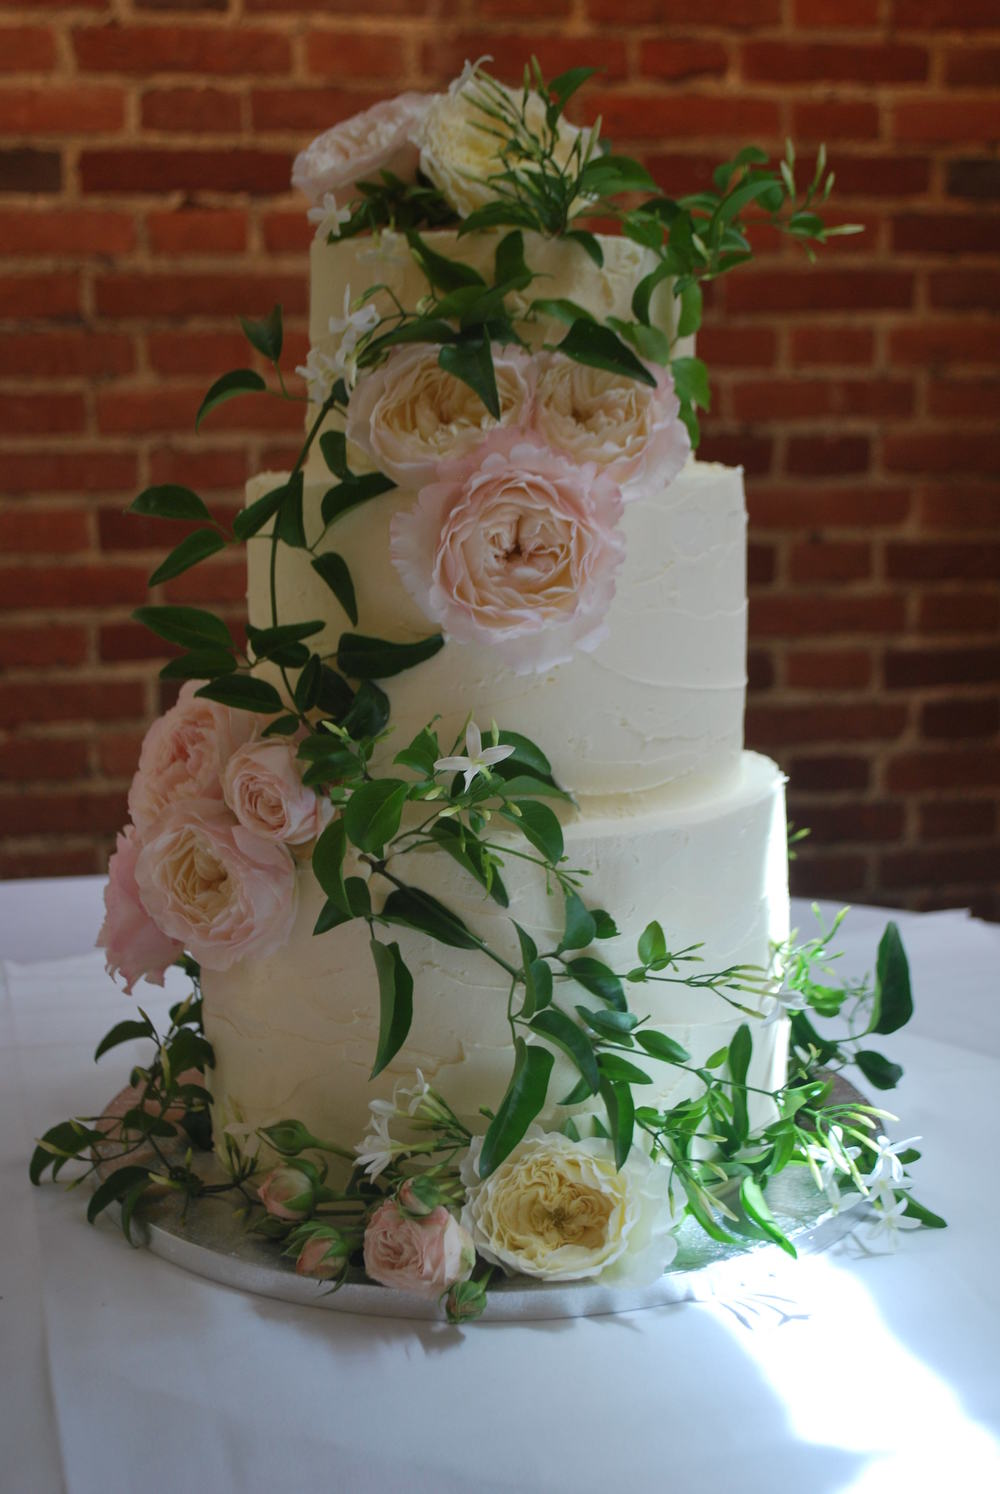 Blog emma page buttercream cakes bespoke wedding and celebration heres a real stunner a rich chocolate madeira and lemon cake frosted with crusting vanilla buttercream and dressed with beautiful david austin roses and izmirmasajfo